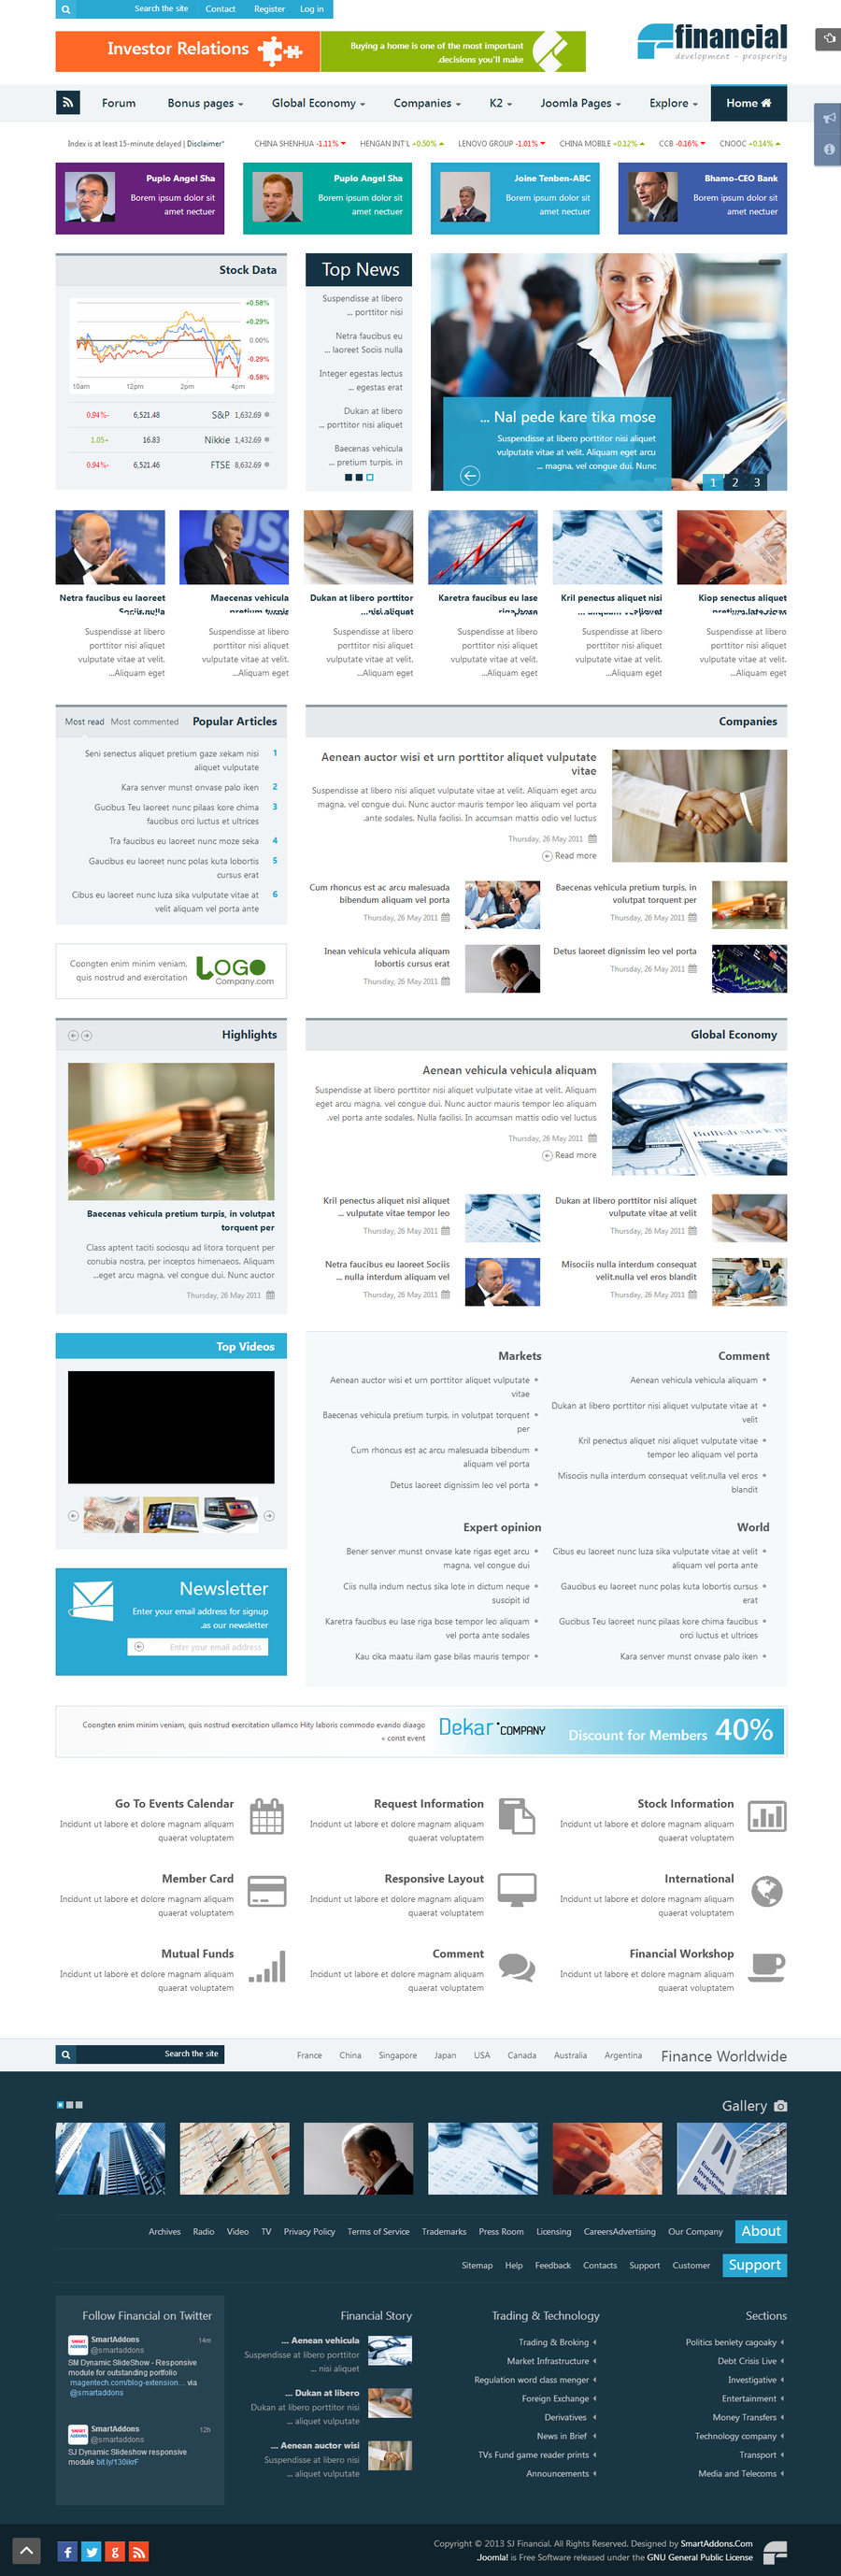 SJ Financial - Responsive Joomla Financial News Template - 03index-rtl.jpg